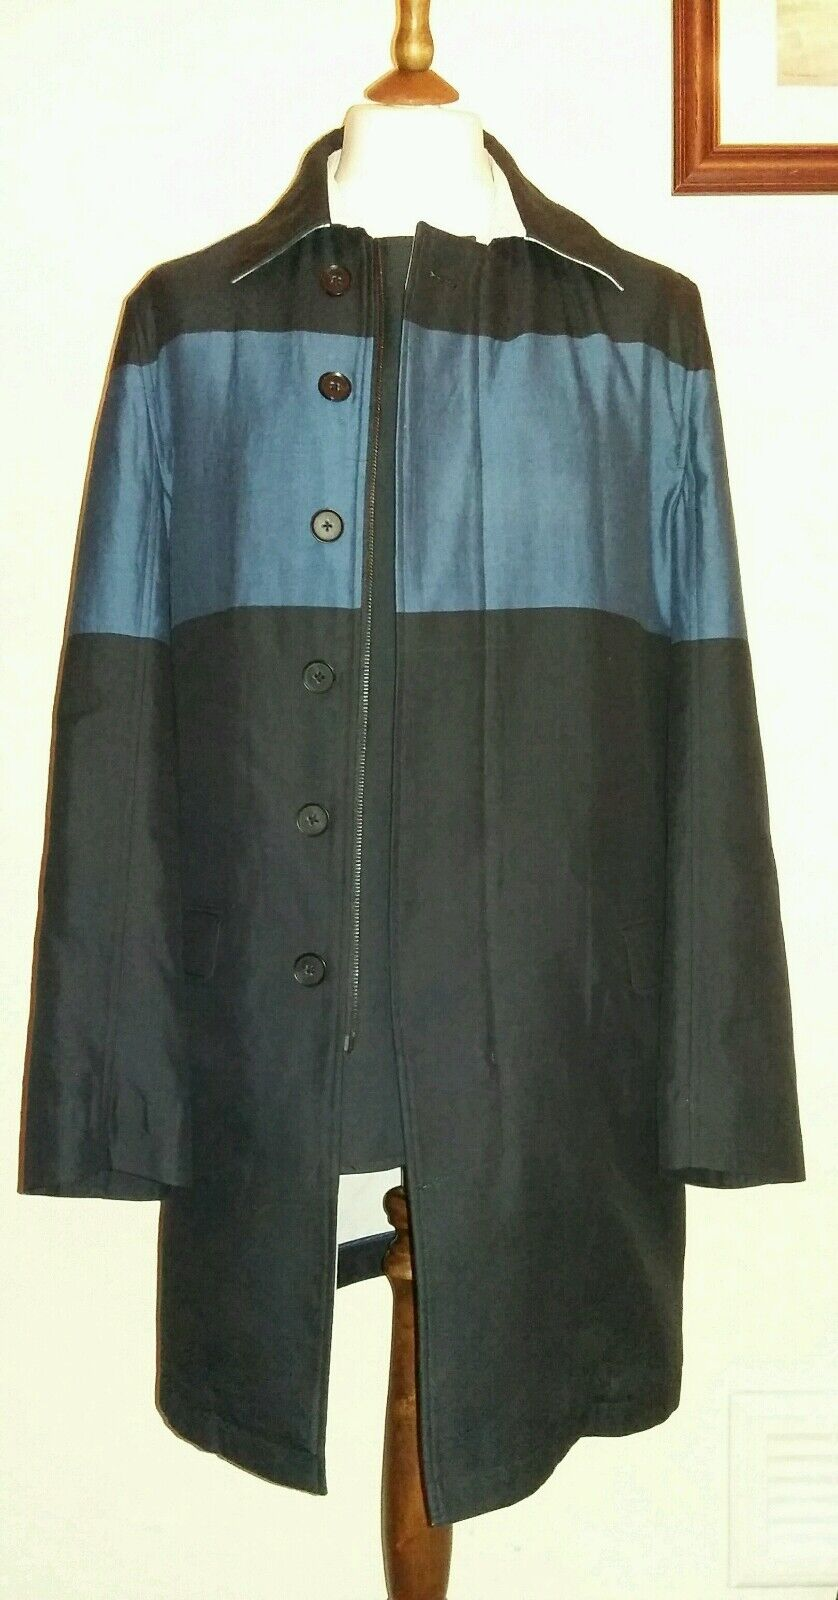 DKNY Slim Fit Lightweight Coat Navy Größe 40R